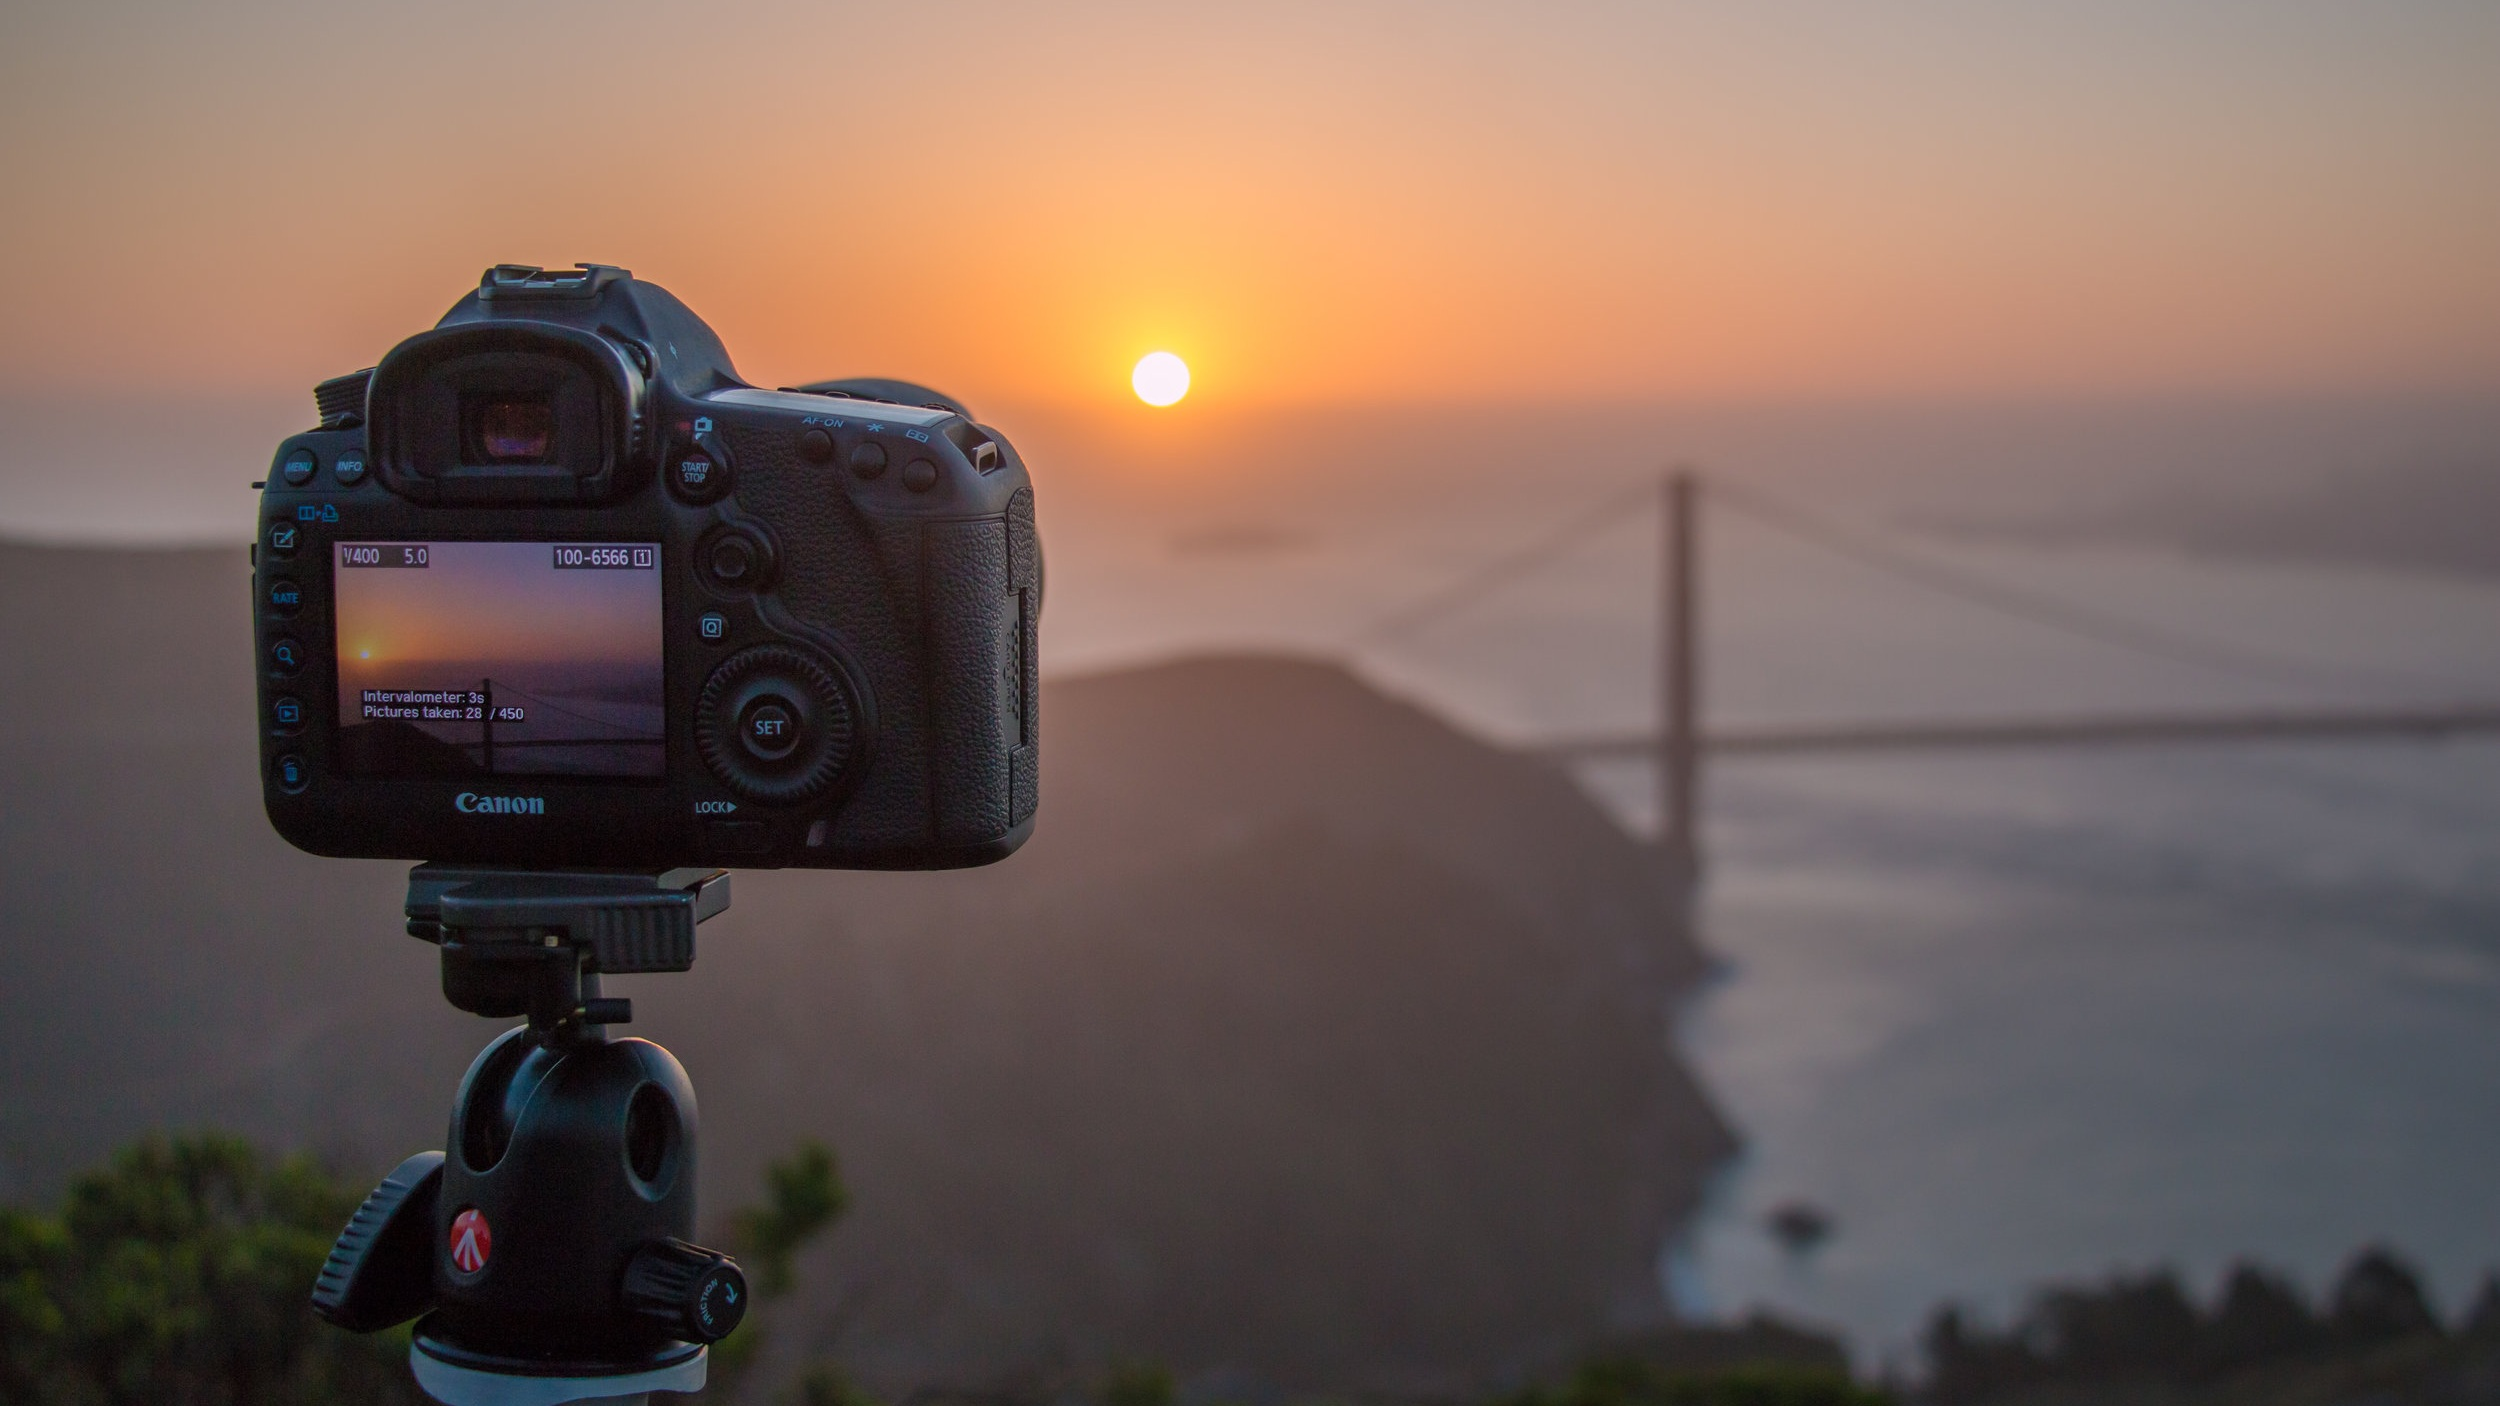 tripod+in+photography